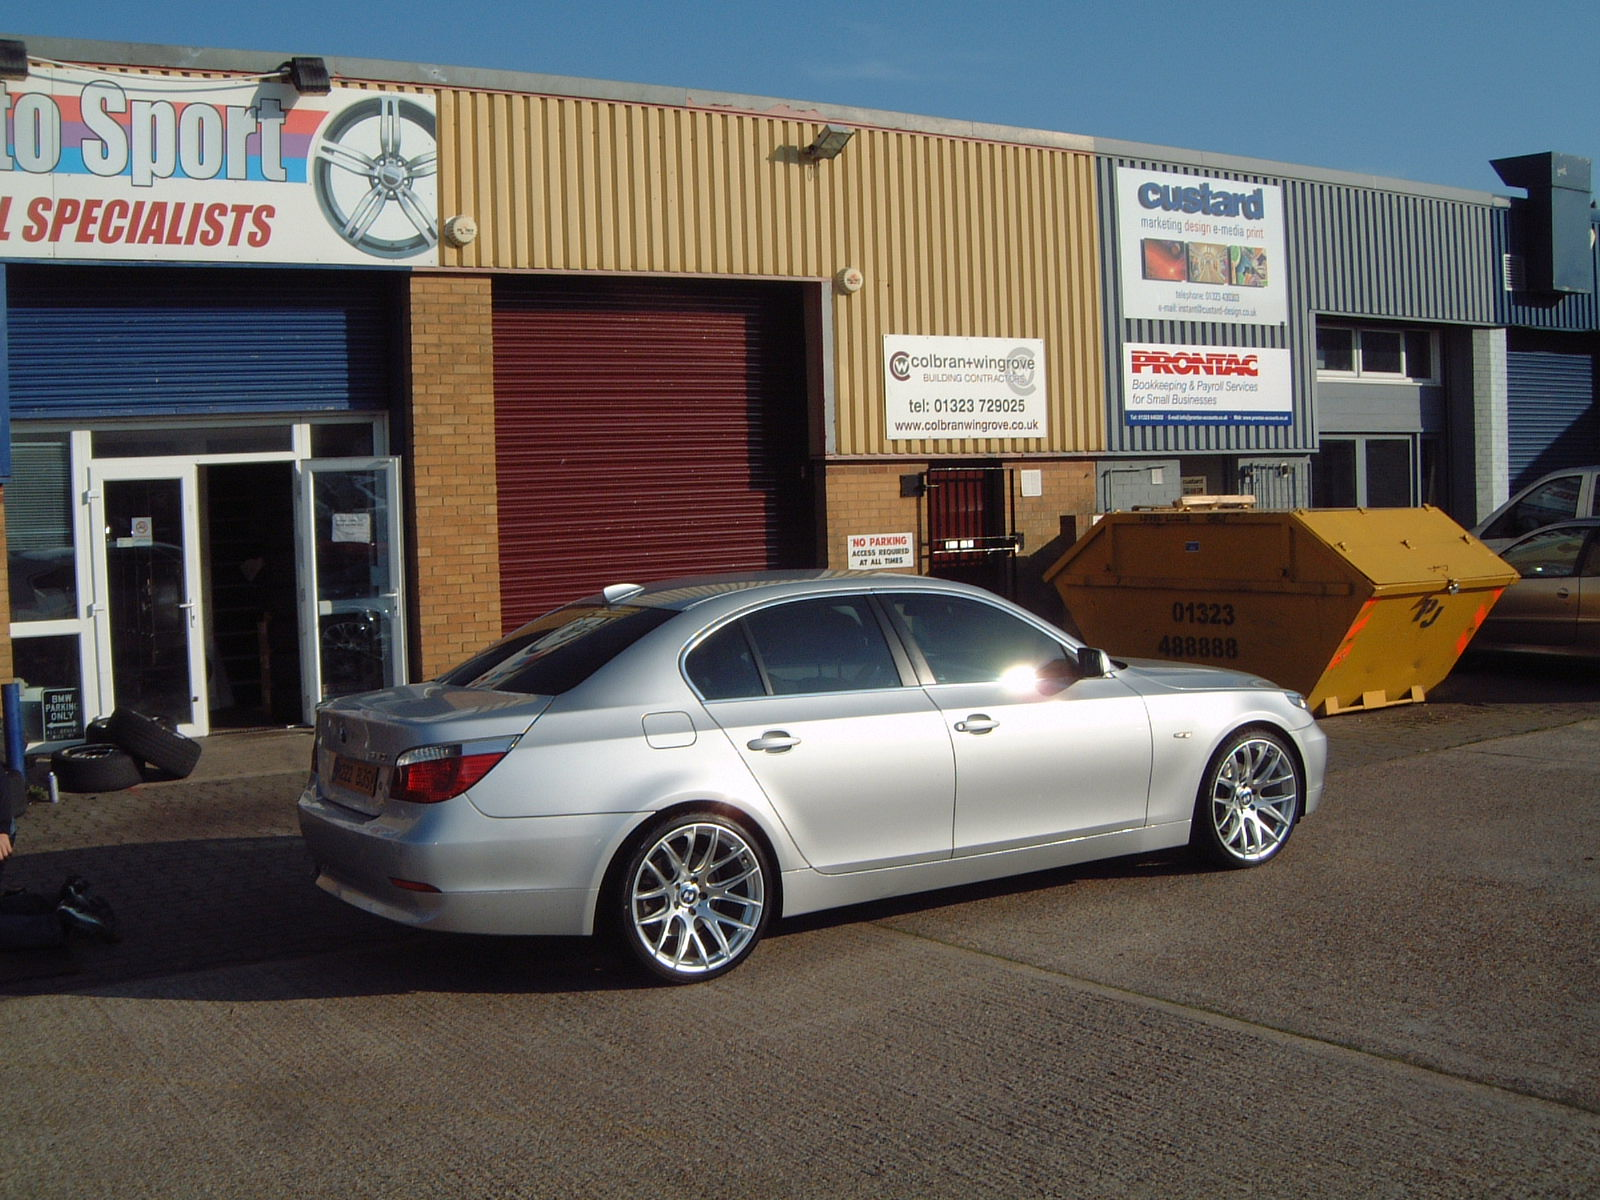 New 19 Quot Zito 935 Csl Gts Style Alloy Wheels In Hyper